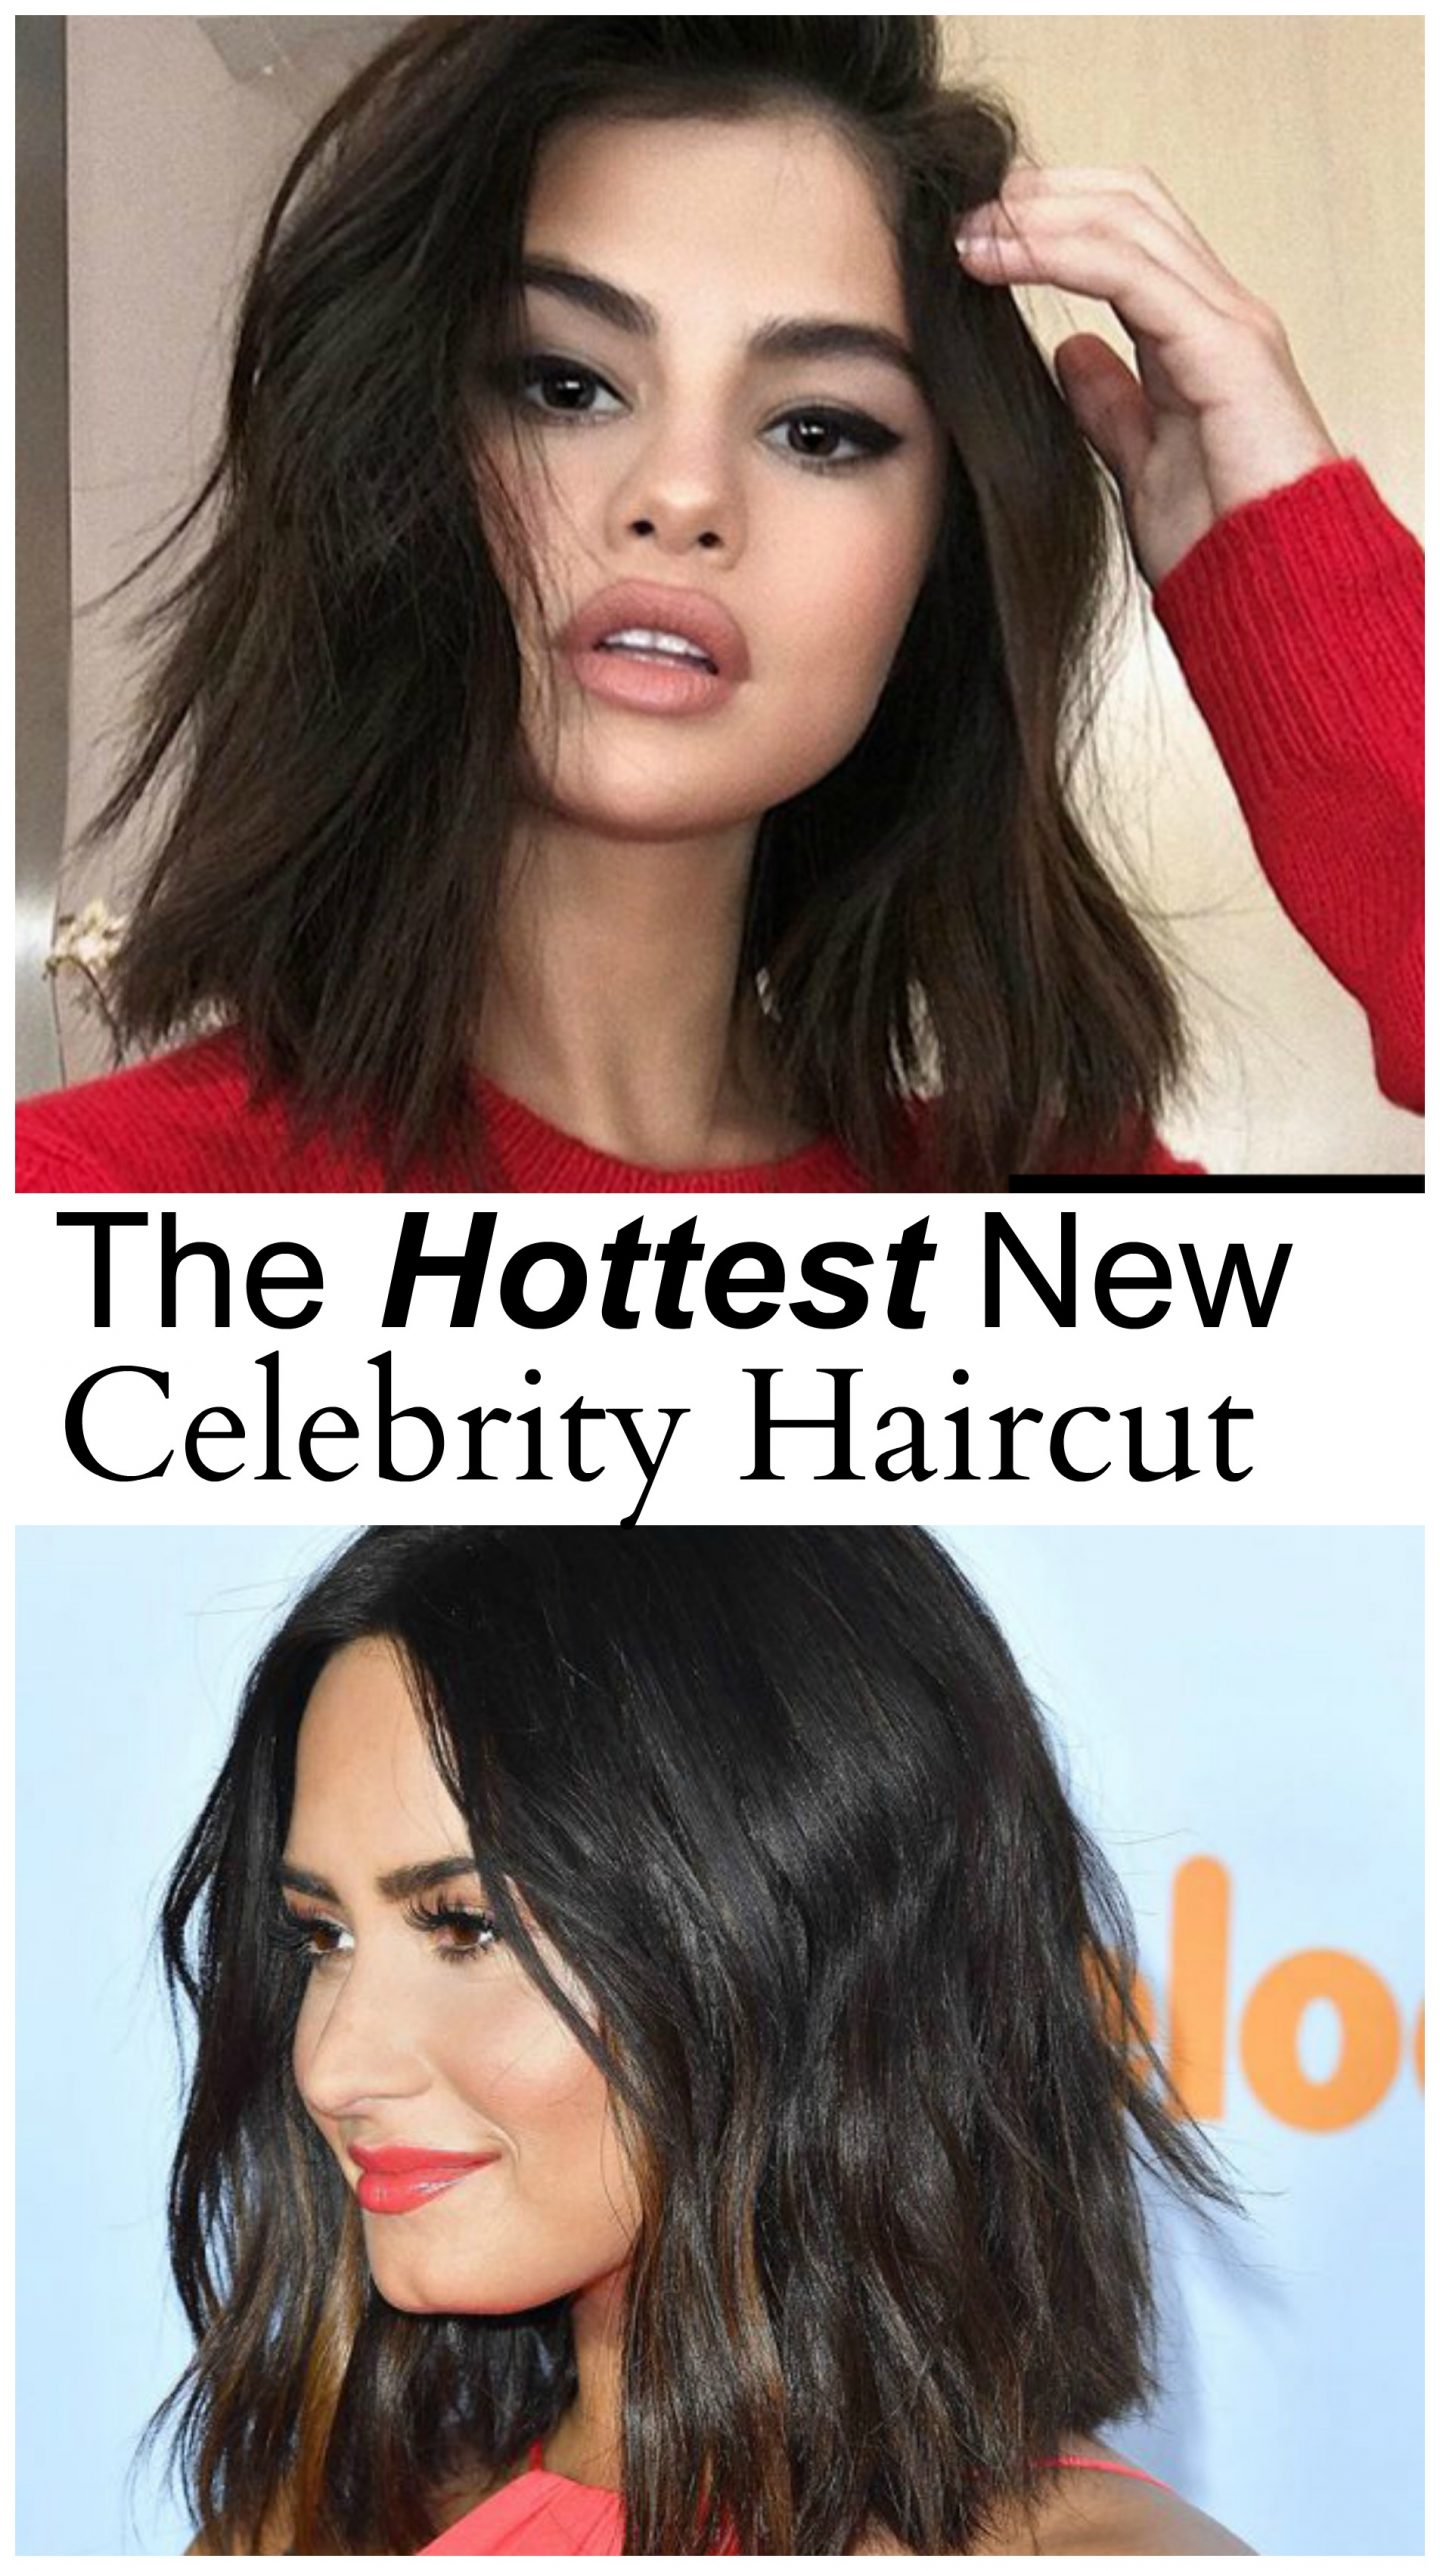 hot new celebrity haircut